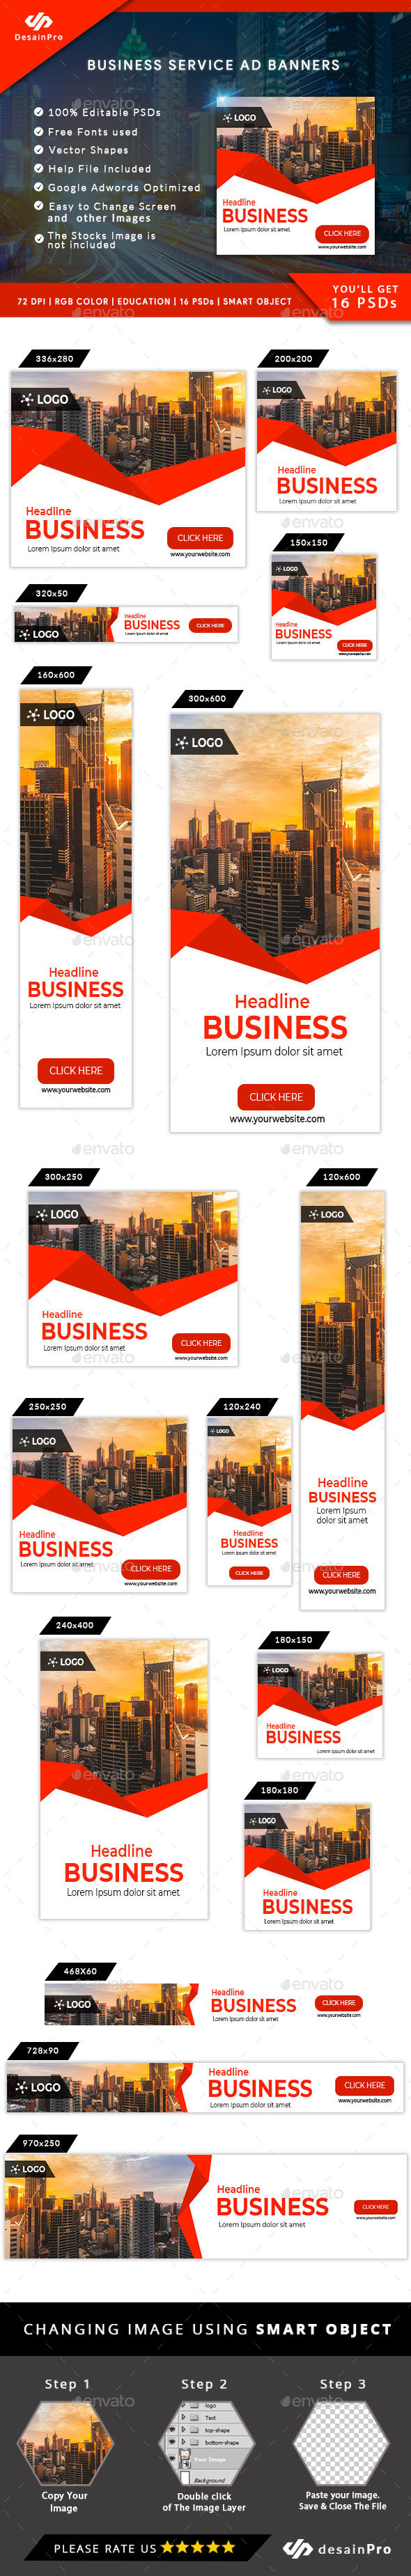 Business Service Ad Banners - AR - Banners & Ads Web Elements